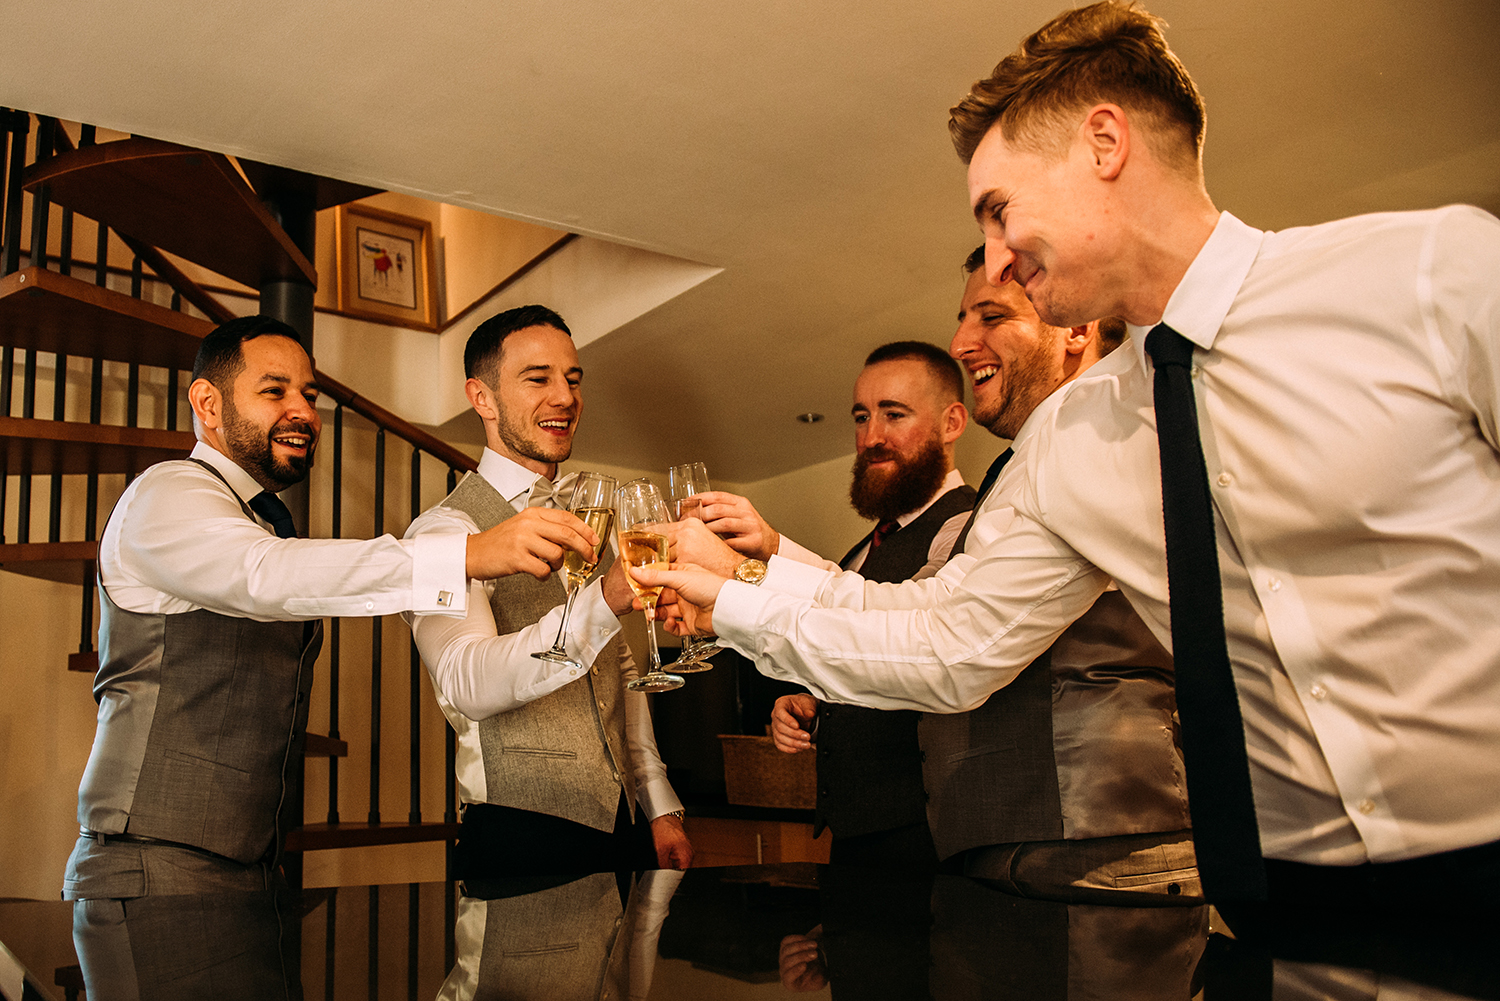 the guys 'cheers' their glasses in the kitchen